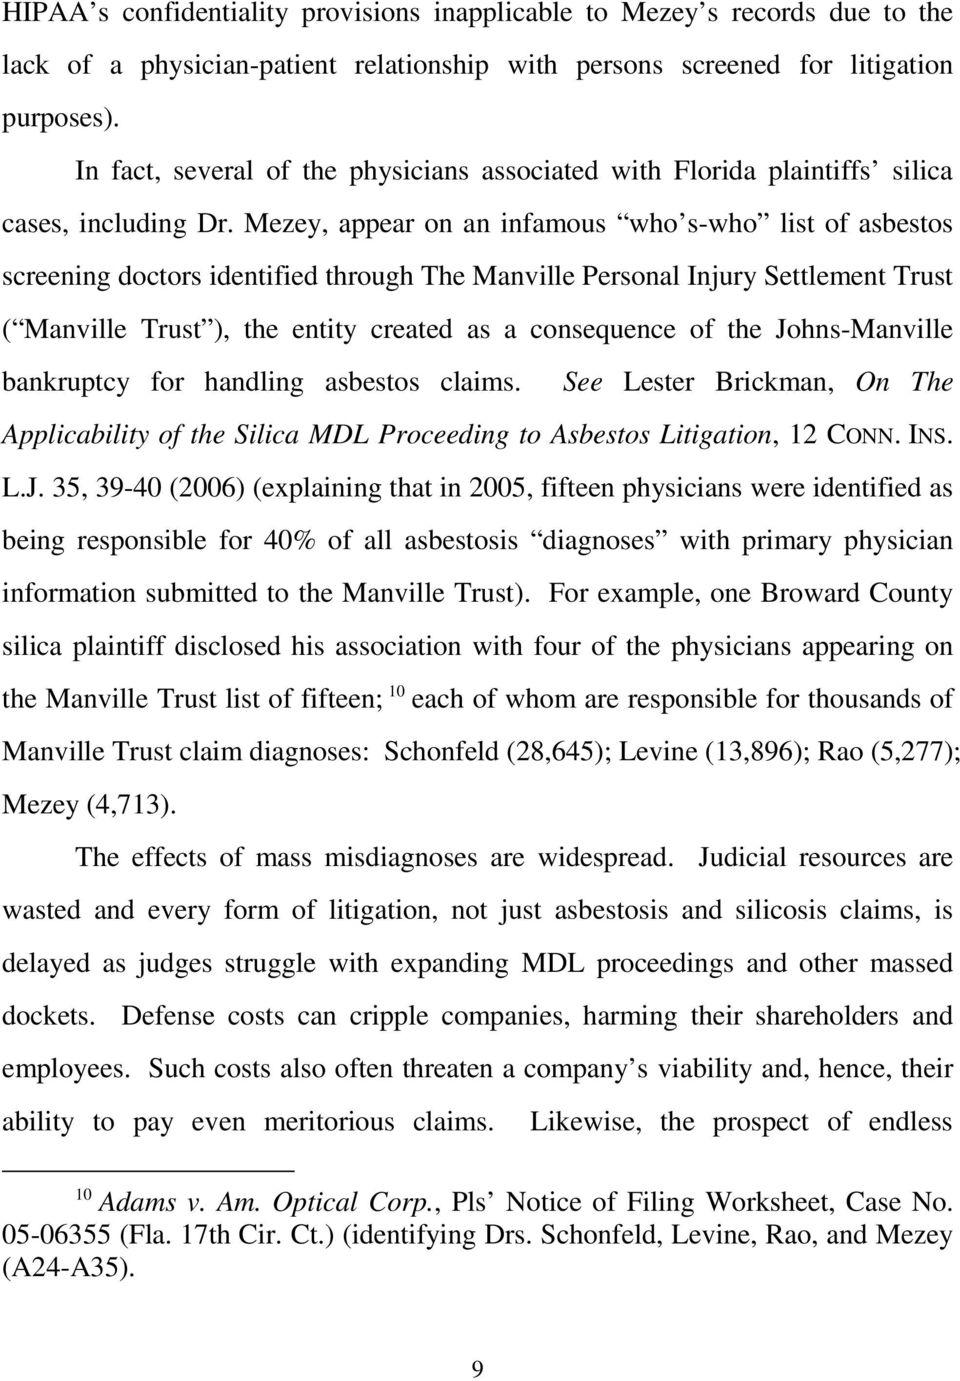 Mezey, appear on an infamous who s-who list of asbestos screening doctors identified through The Manville Personal Injury Settlement Trust ( Manville Trust ), the entity created as a consequence of